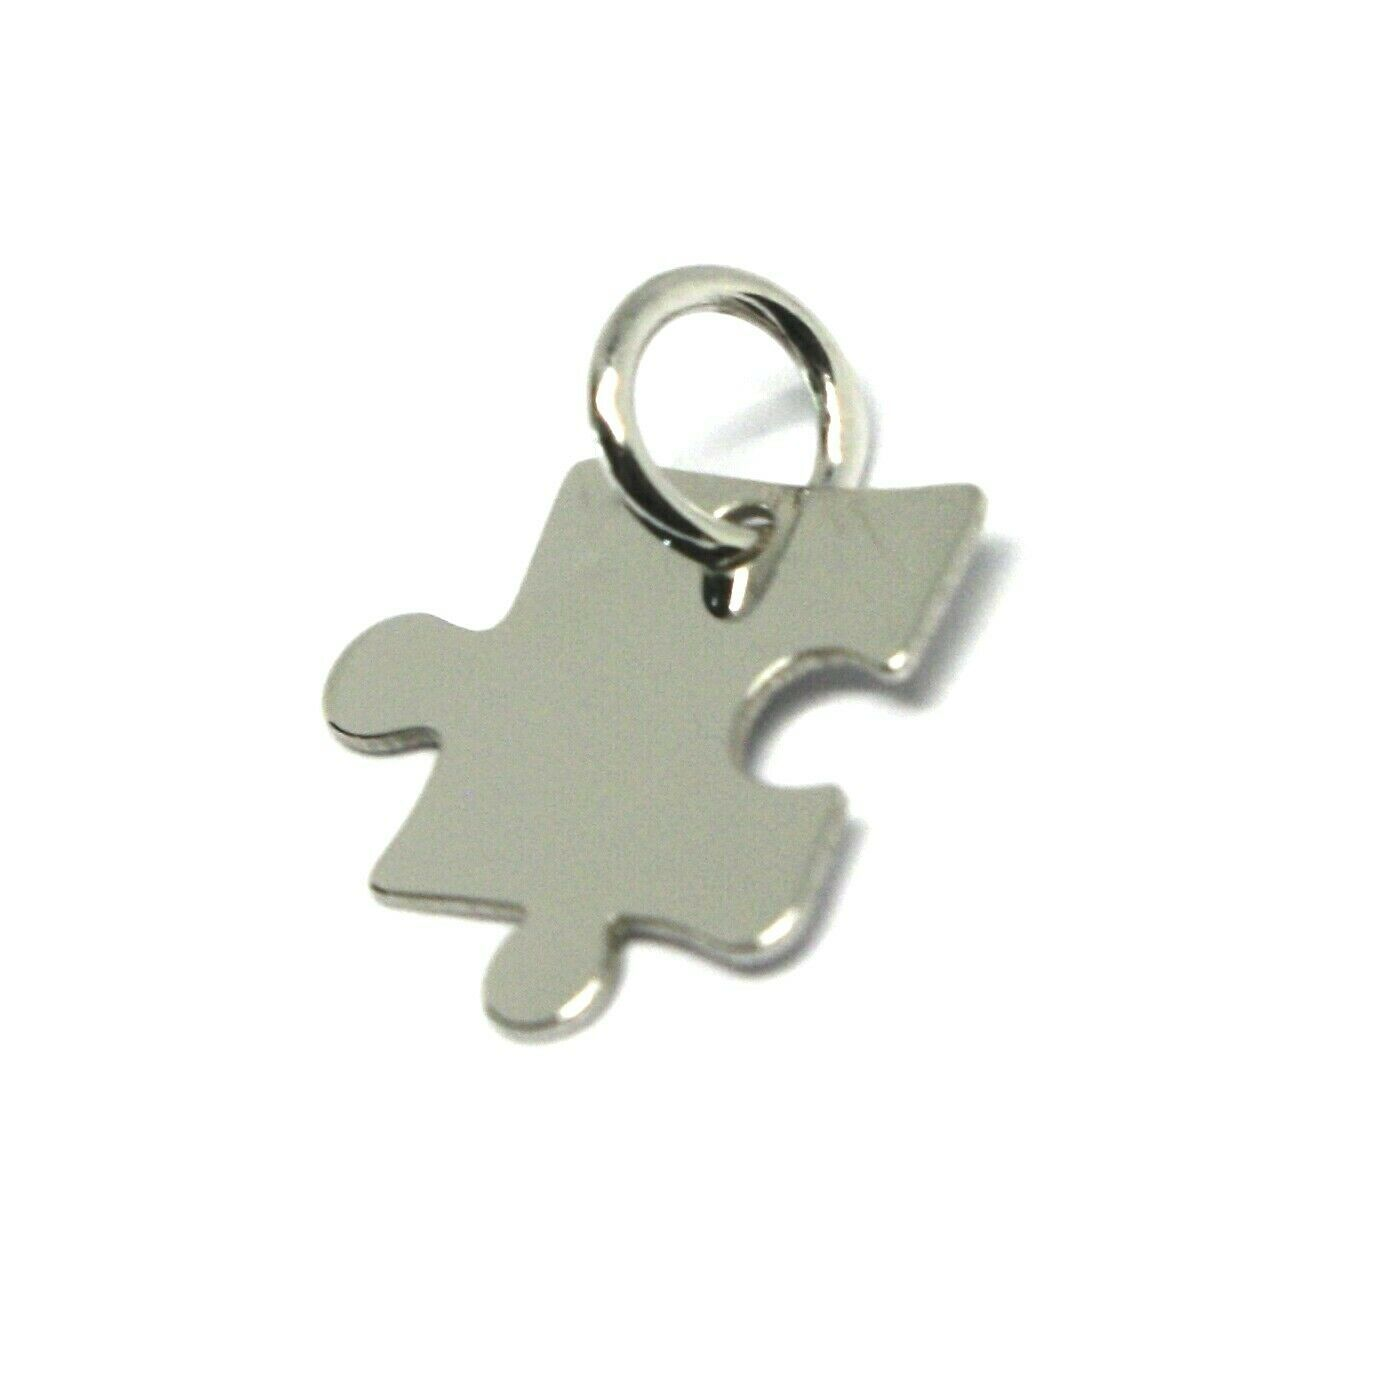 18K WHITE GOLD CHARM PENDANT, MINI PUZZLE PIECE, FLAT, MADE IN ITALY image 2